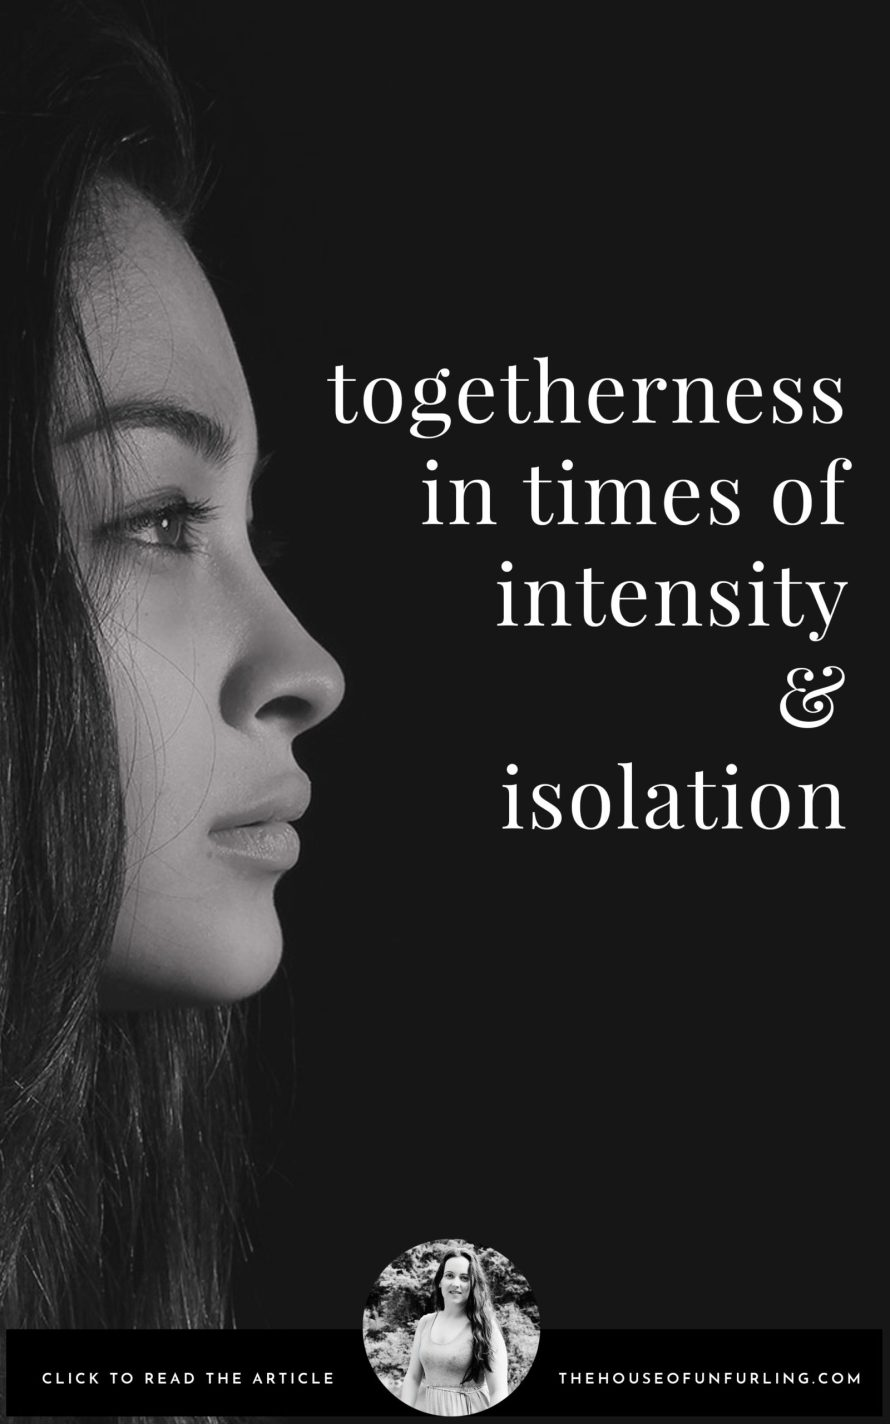 CLICK THROUGH TO READ: Togetherness In Times of Intensity & Isolation. With fierce love, Kath - kathleensaelens.com